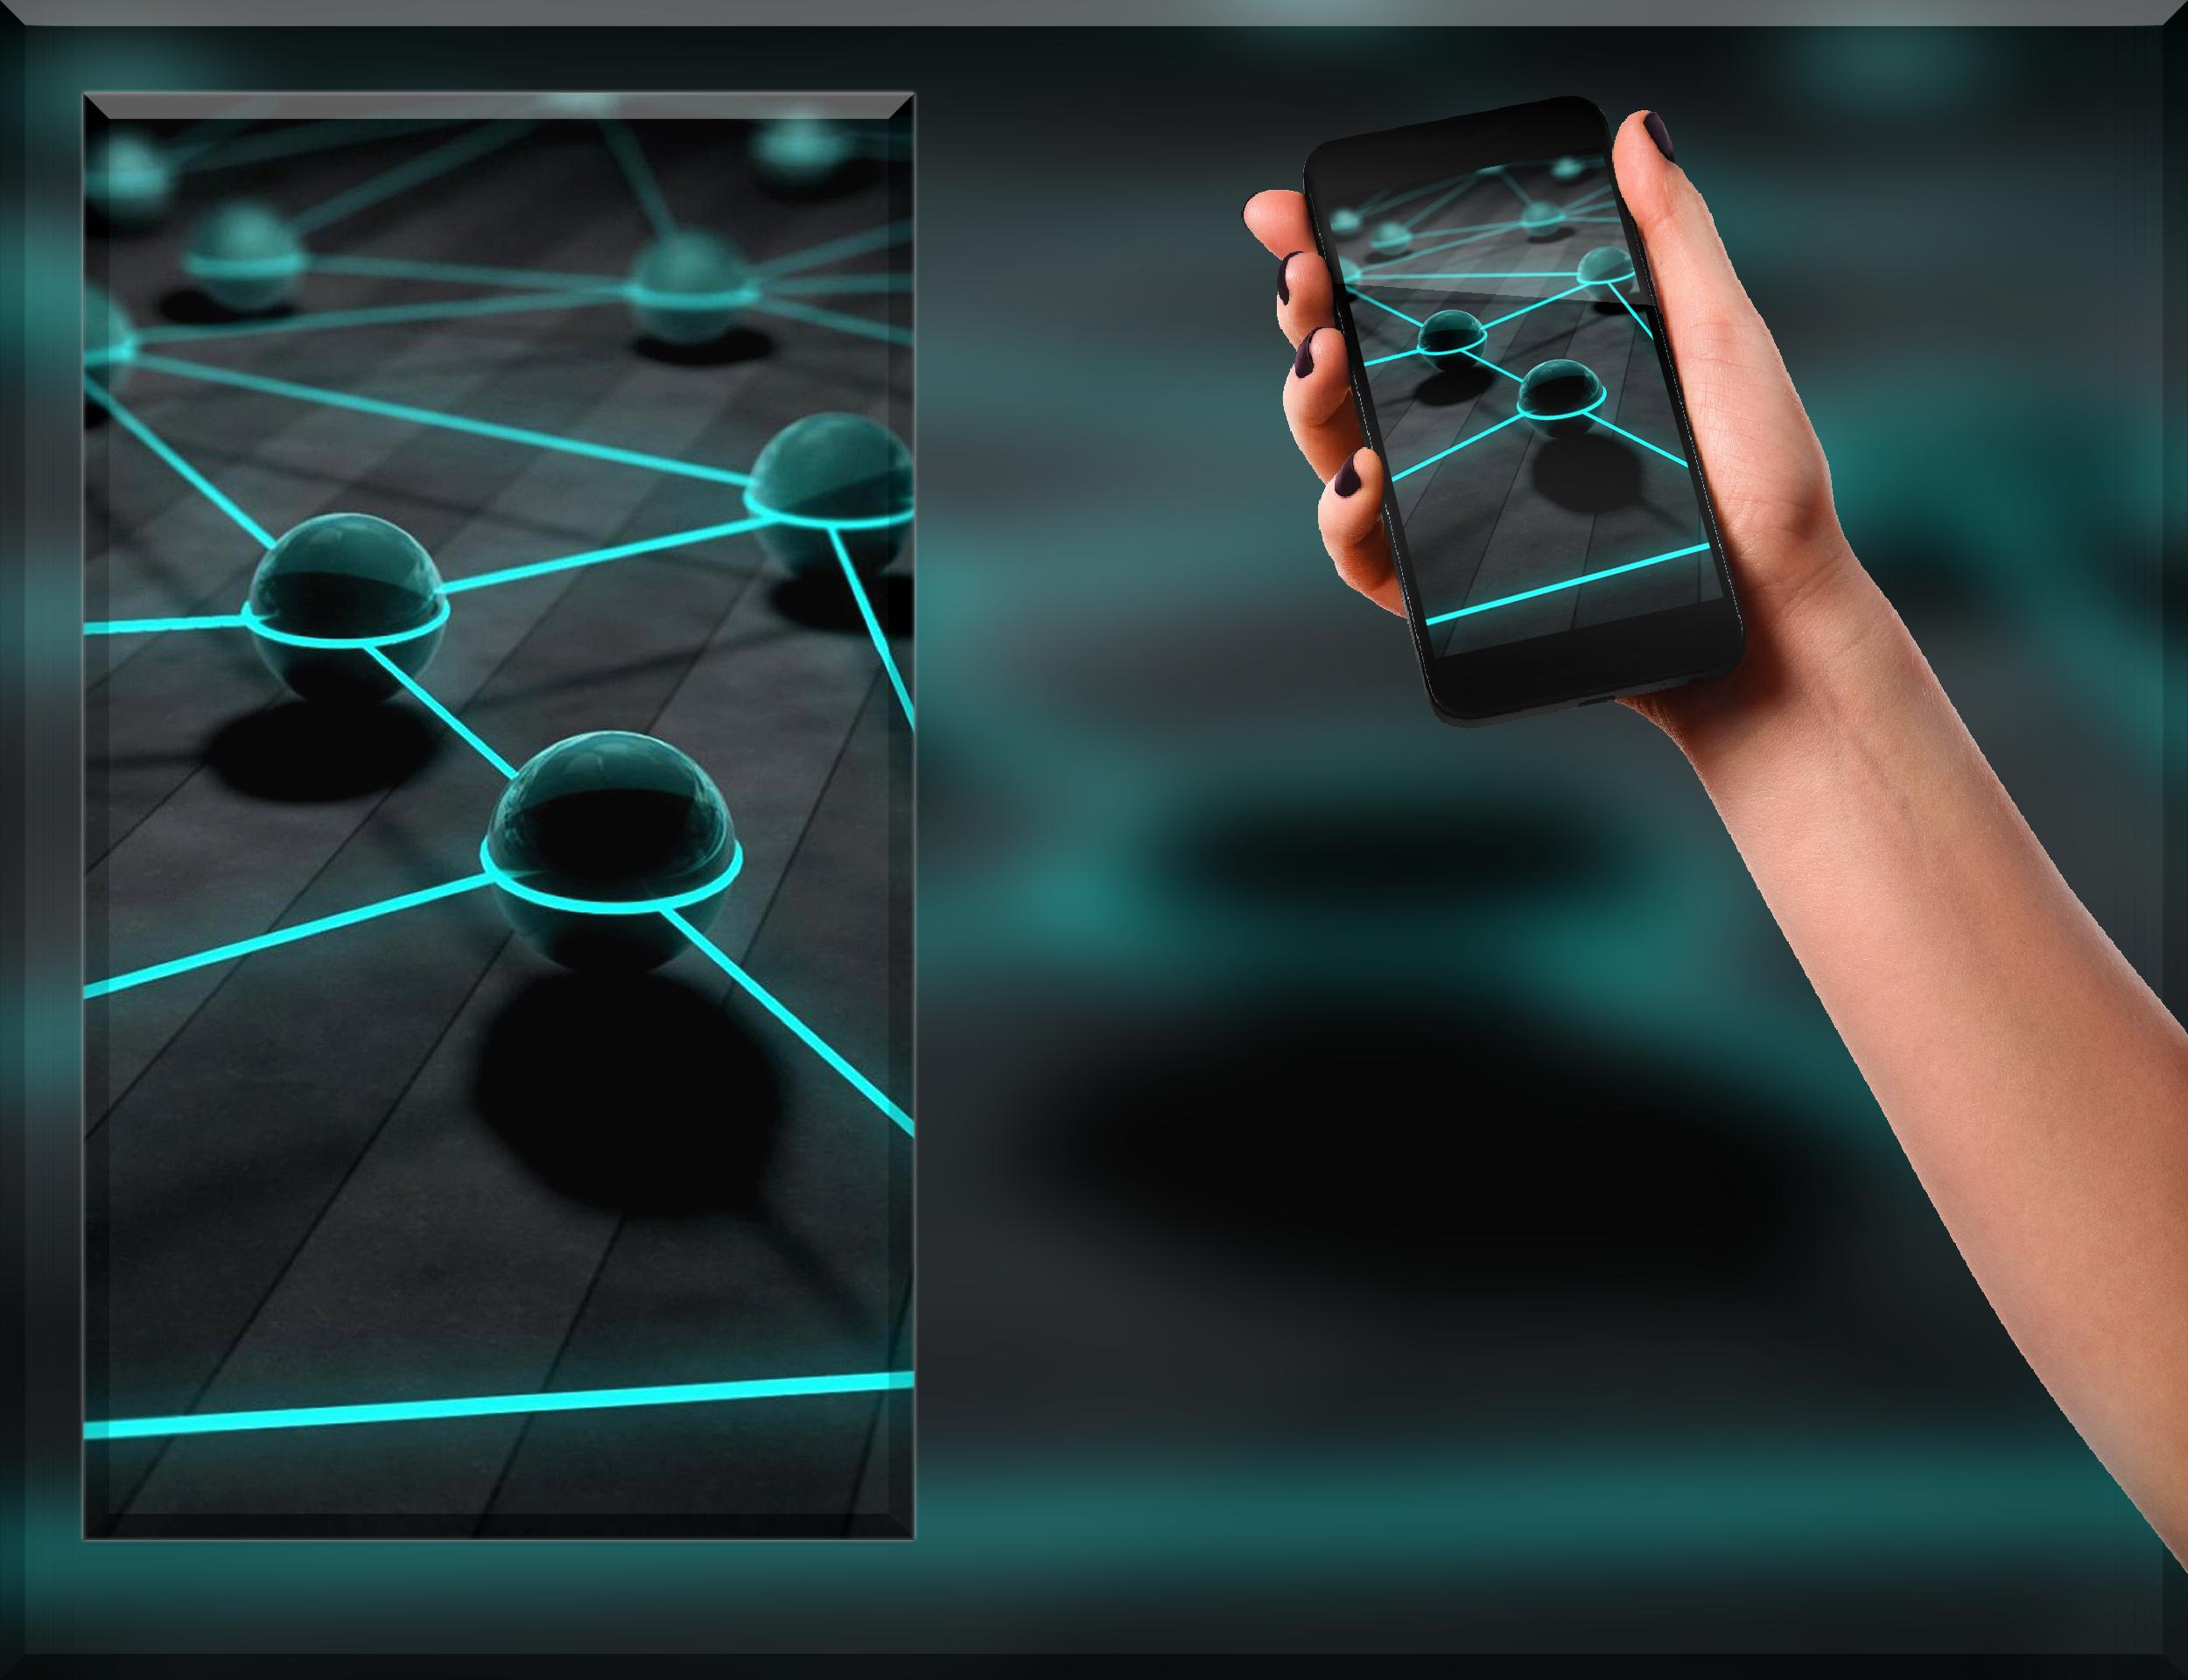 3D wallpaper parallax 2018 for Android - APK Download